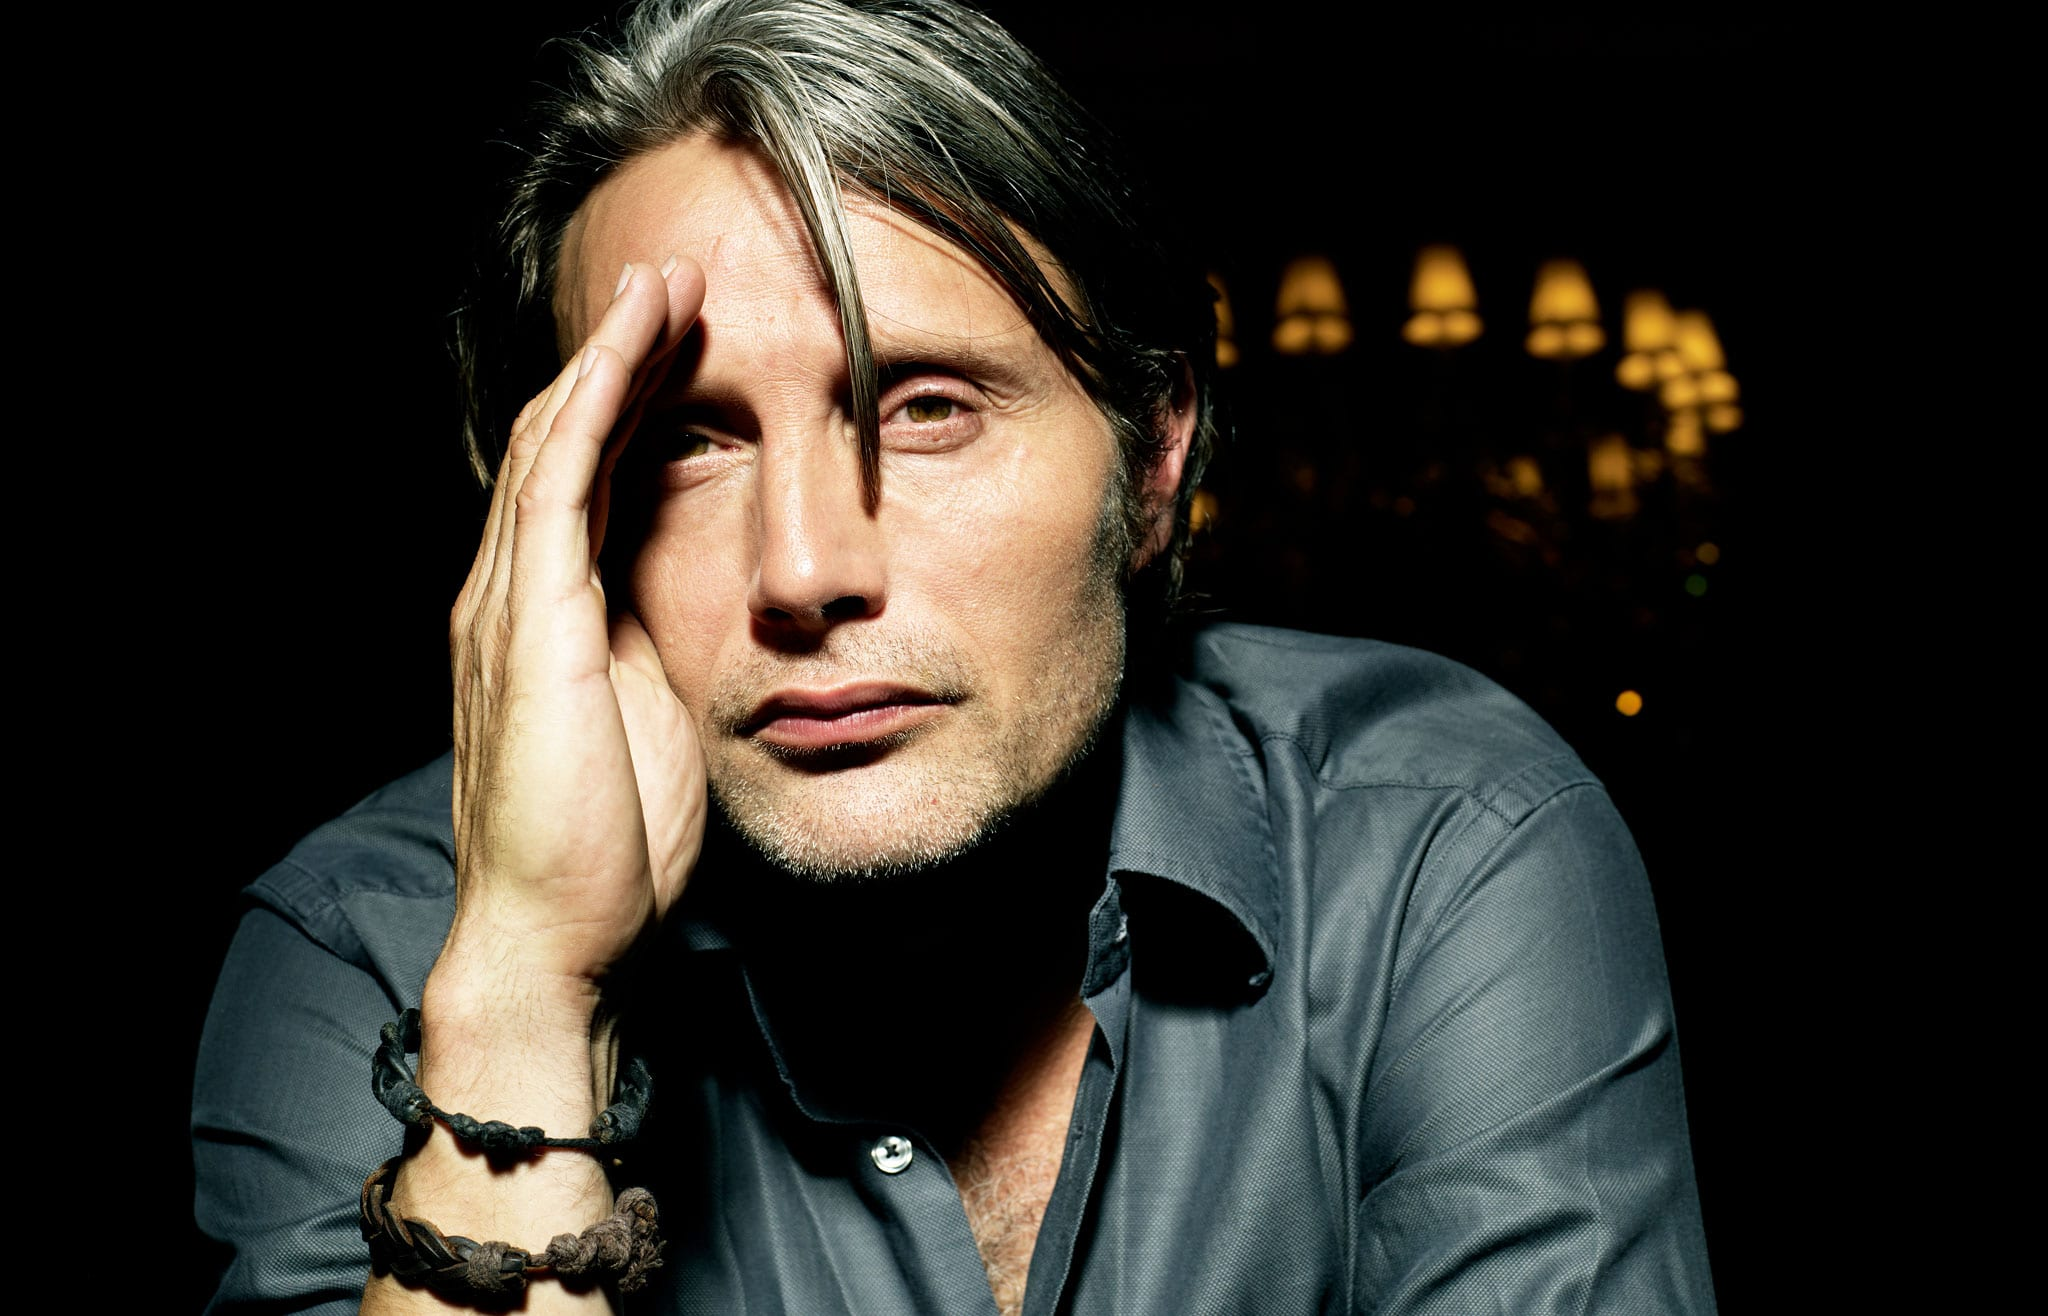 Bad Set Palma Mads Mikkelsen Snaps Up Luxury Pad In Heart Of Palma De Mallorca